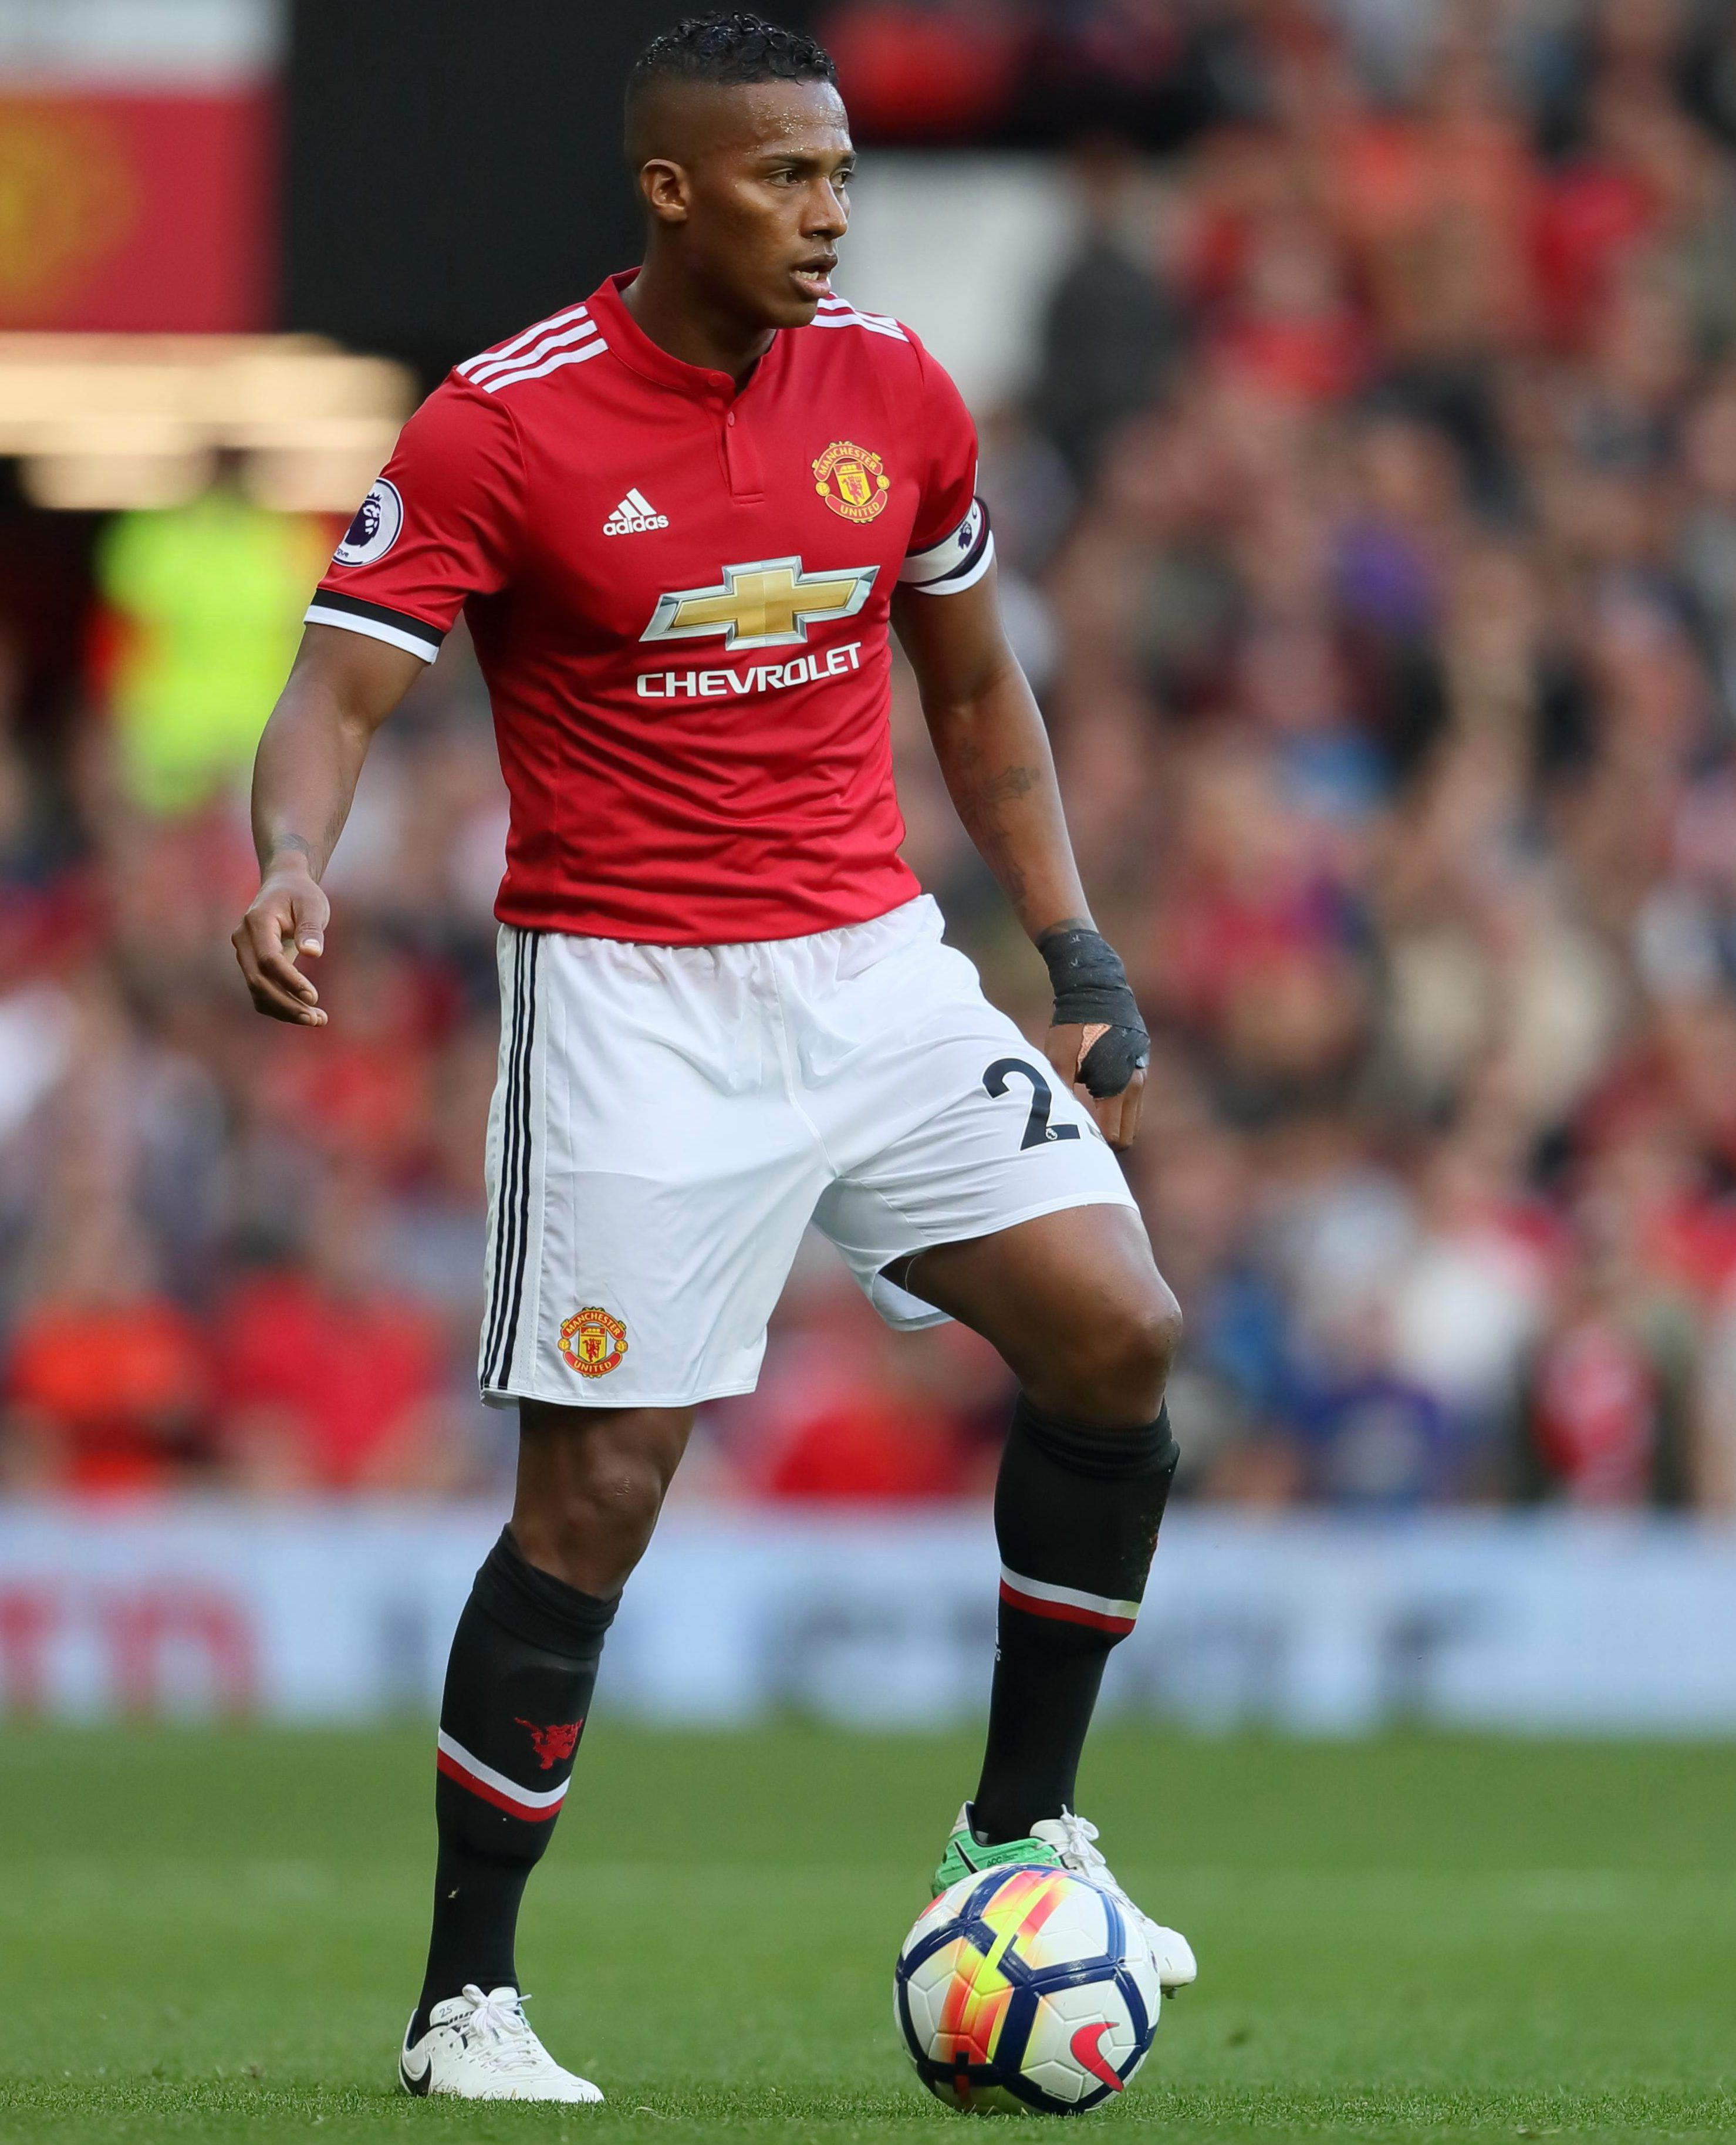 Antonio Valencia here, looking panicked as the ball touches his left foot